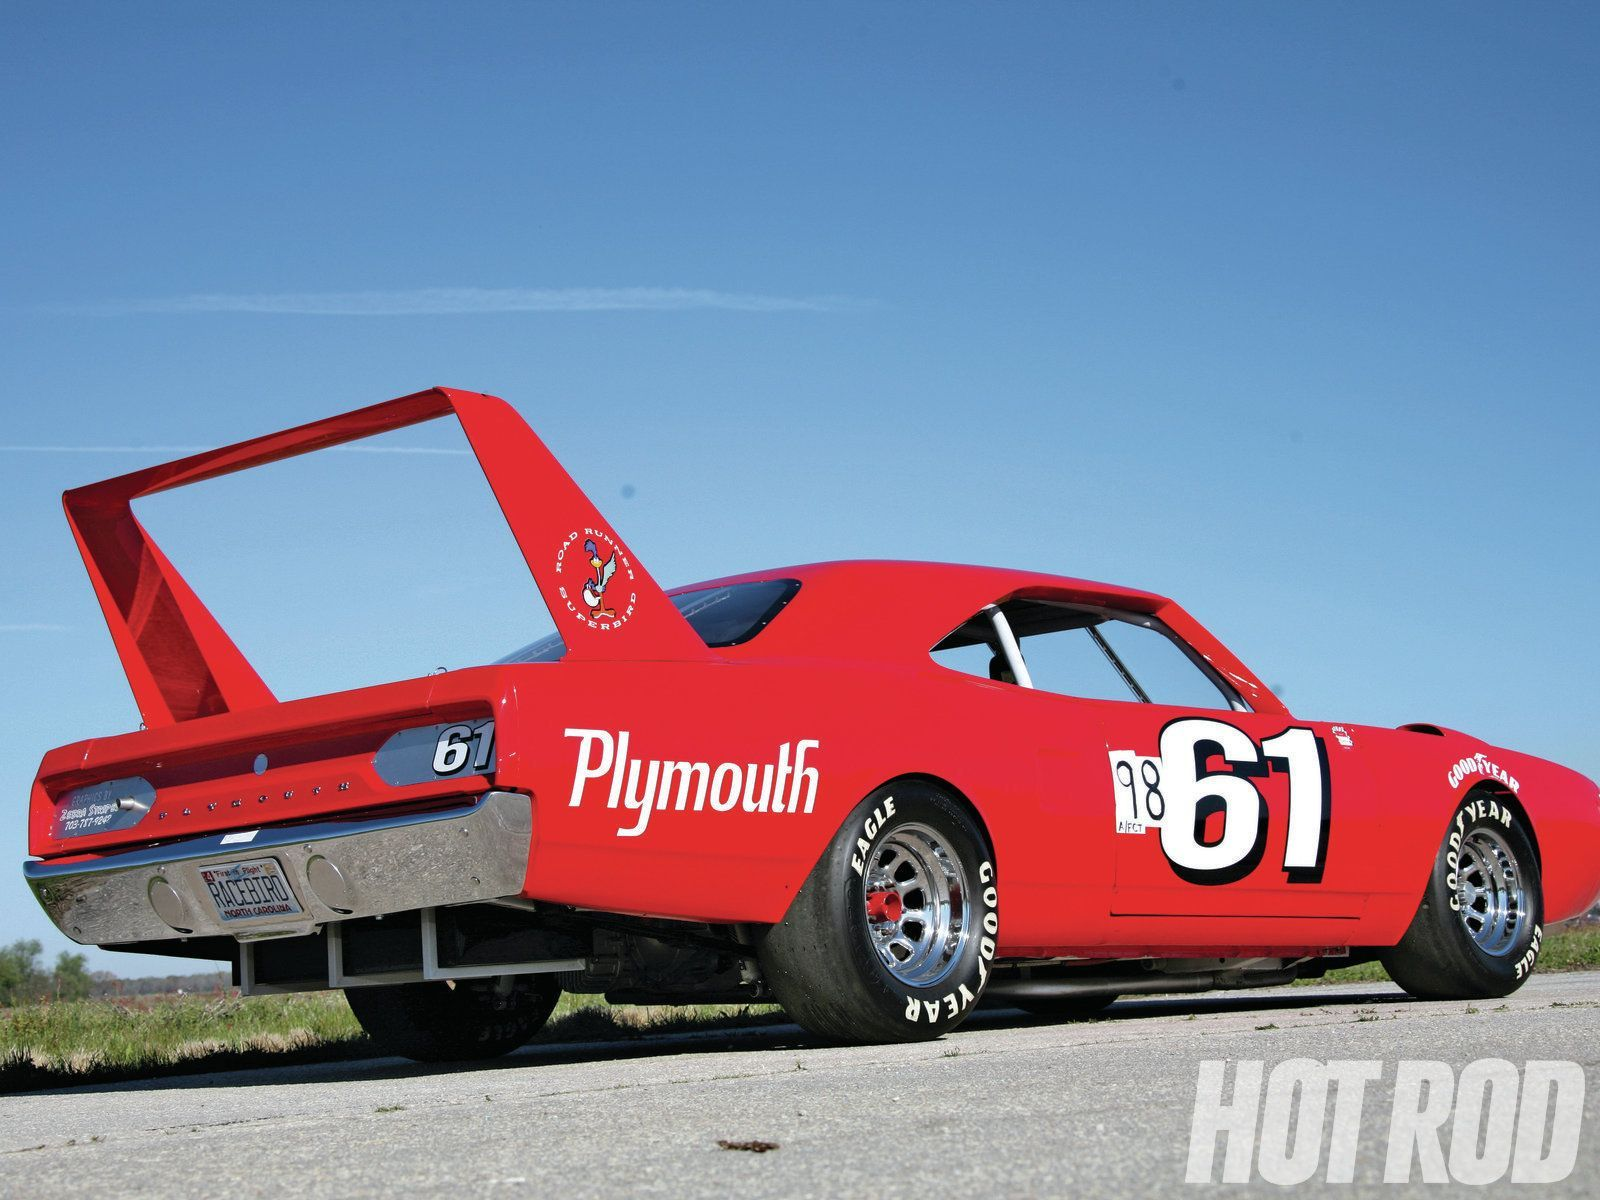 hrdp-1108-13+7th-annual-top-speed-challenge+plymouth-road-runner.jpg ...